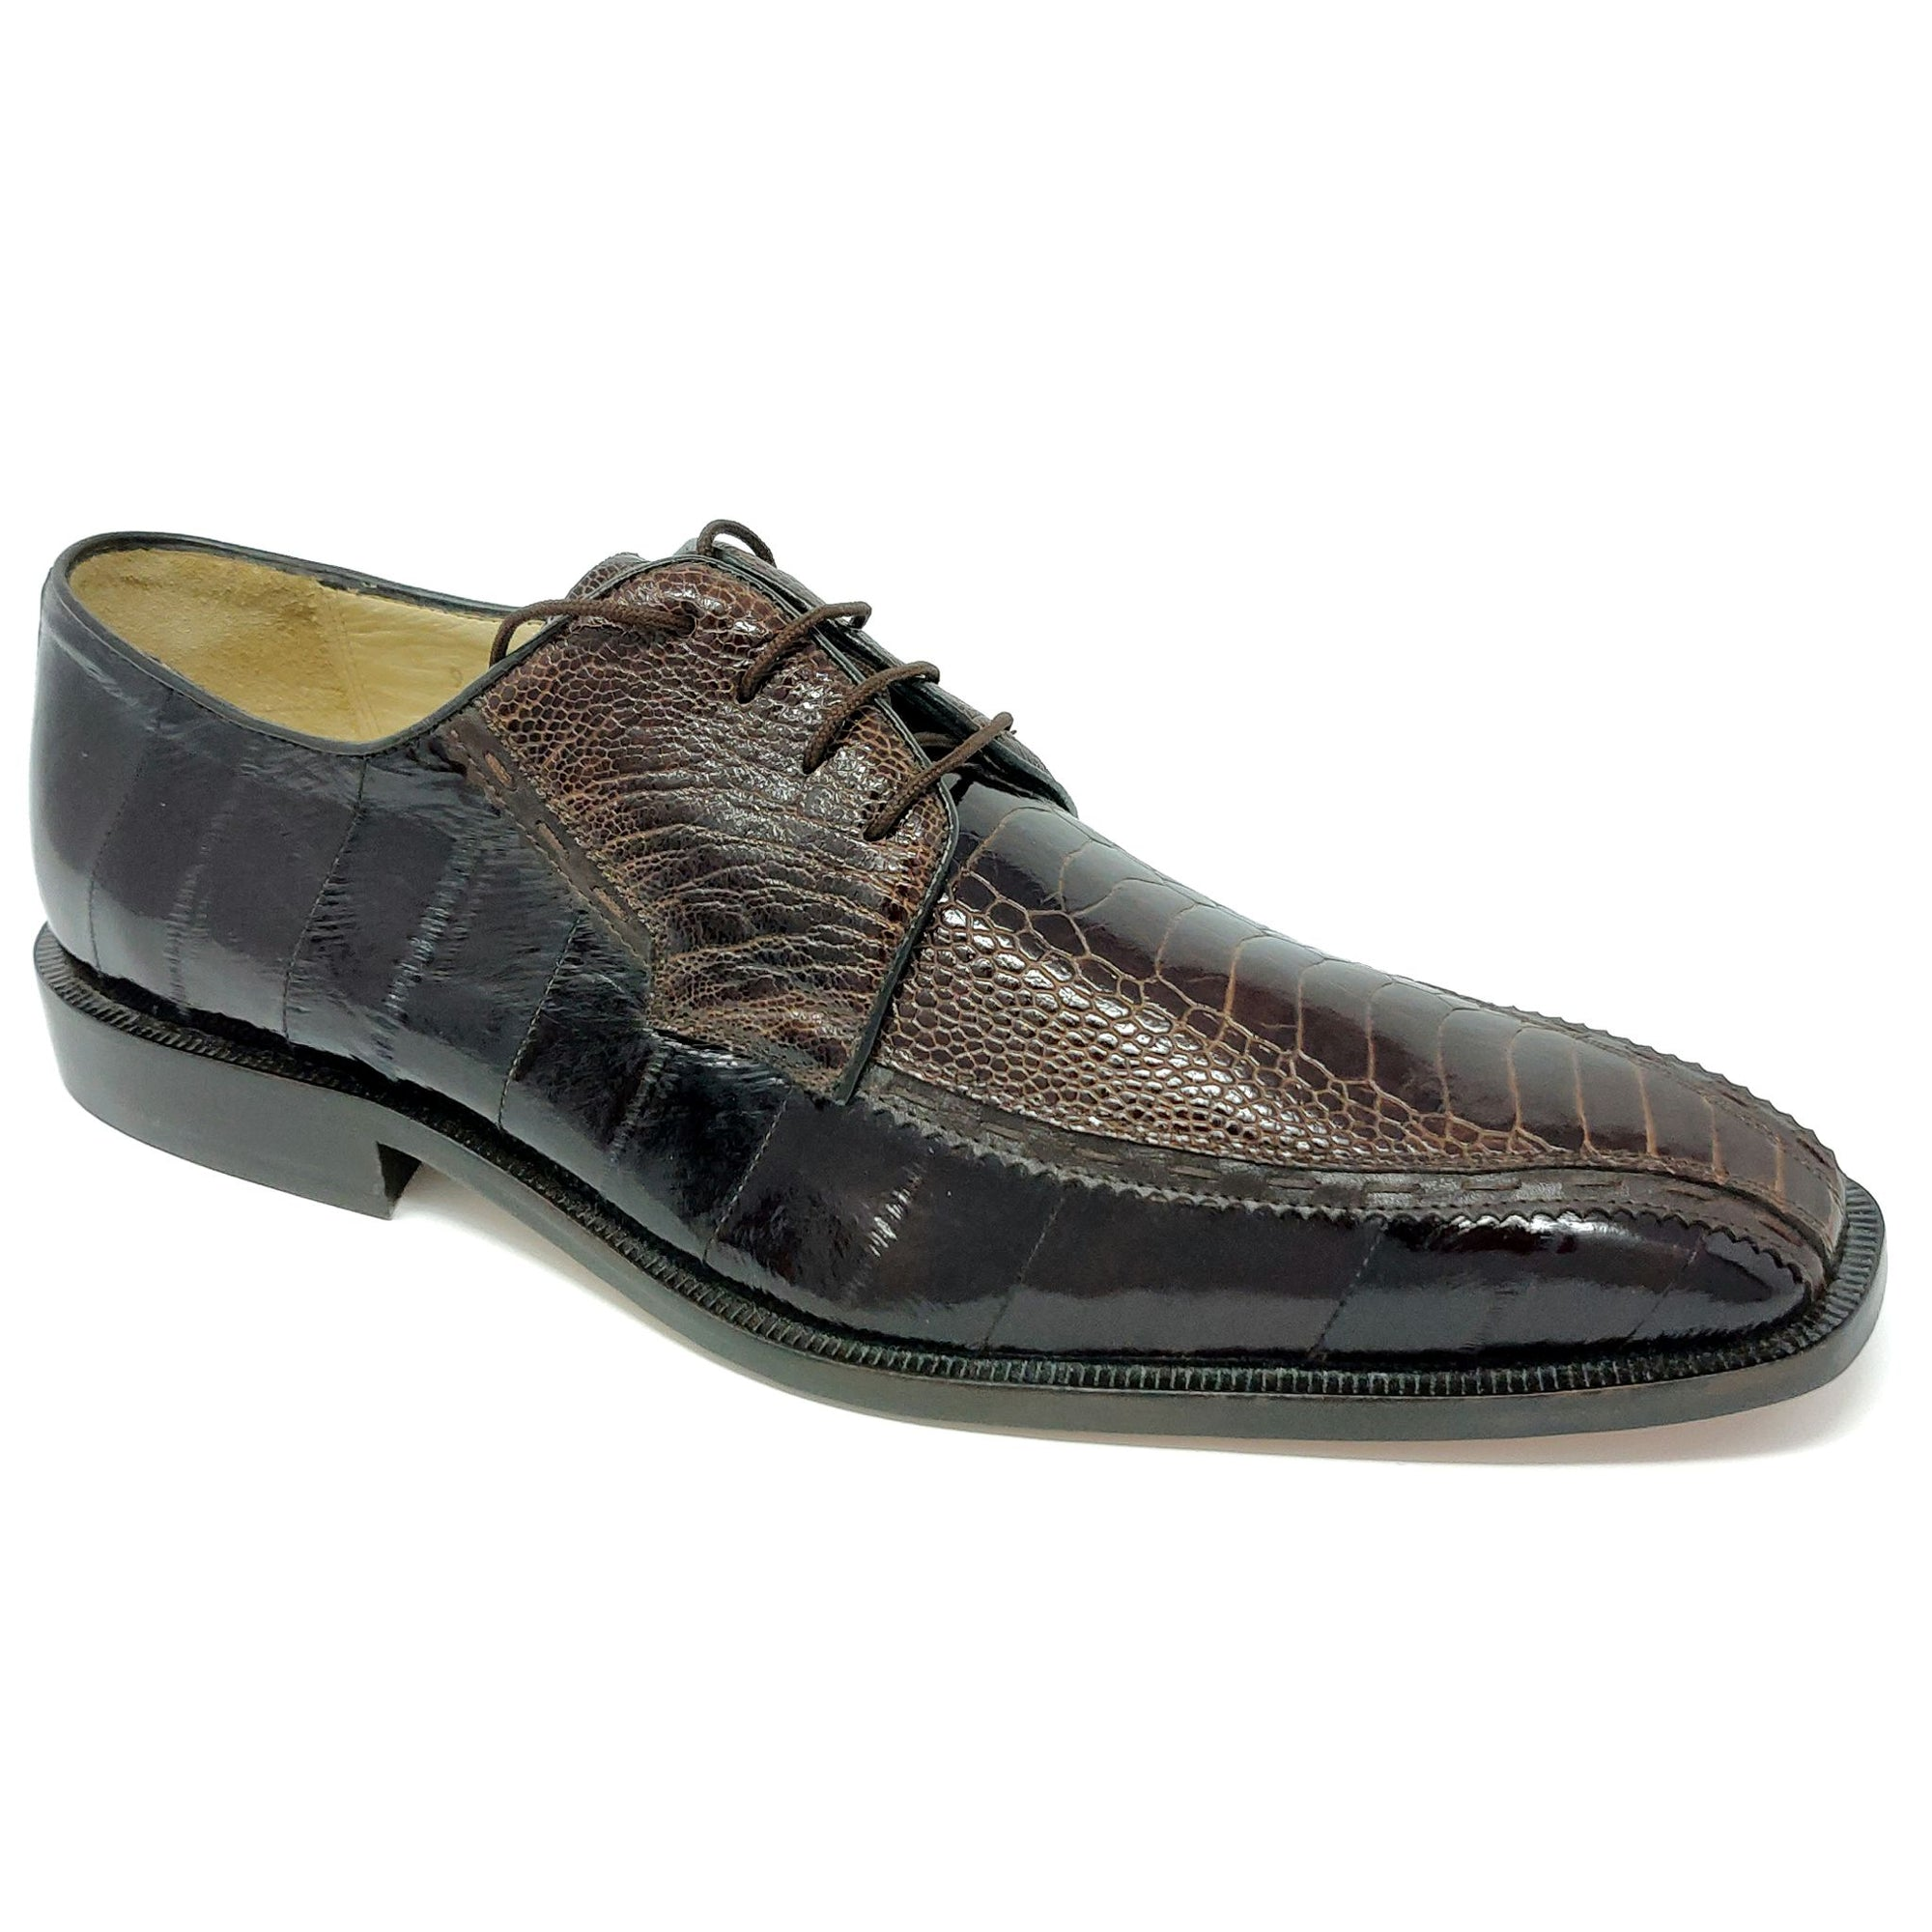 Belvedere Cava Ostrich Brown Shoes - Dapperfam.com